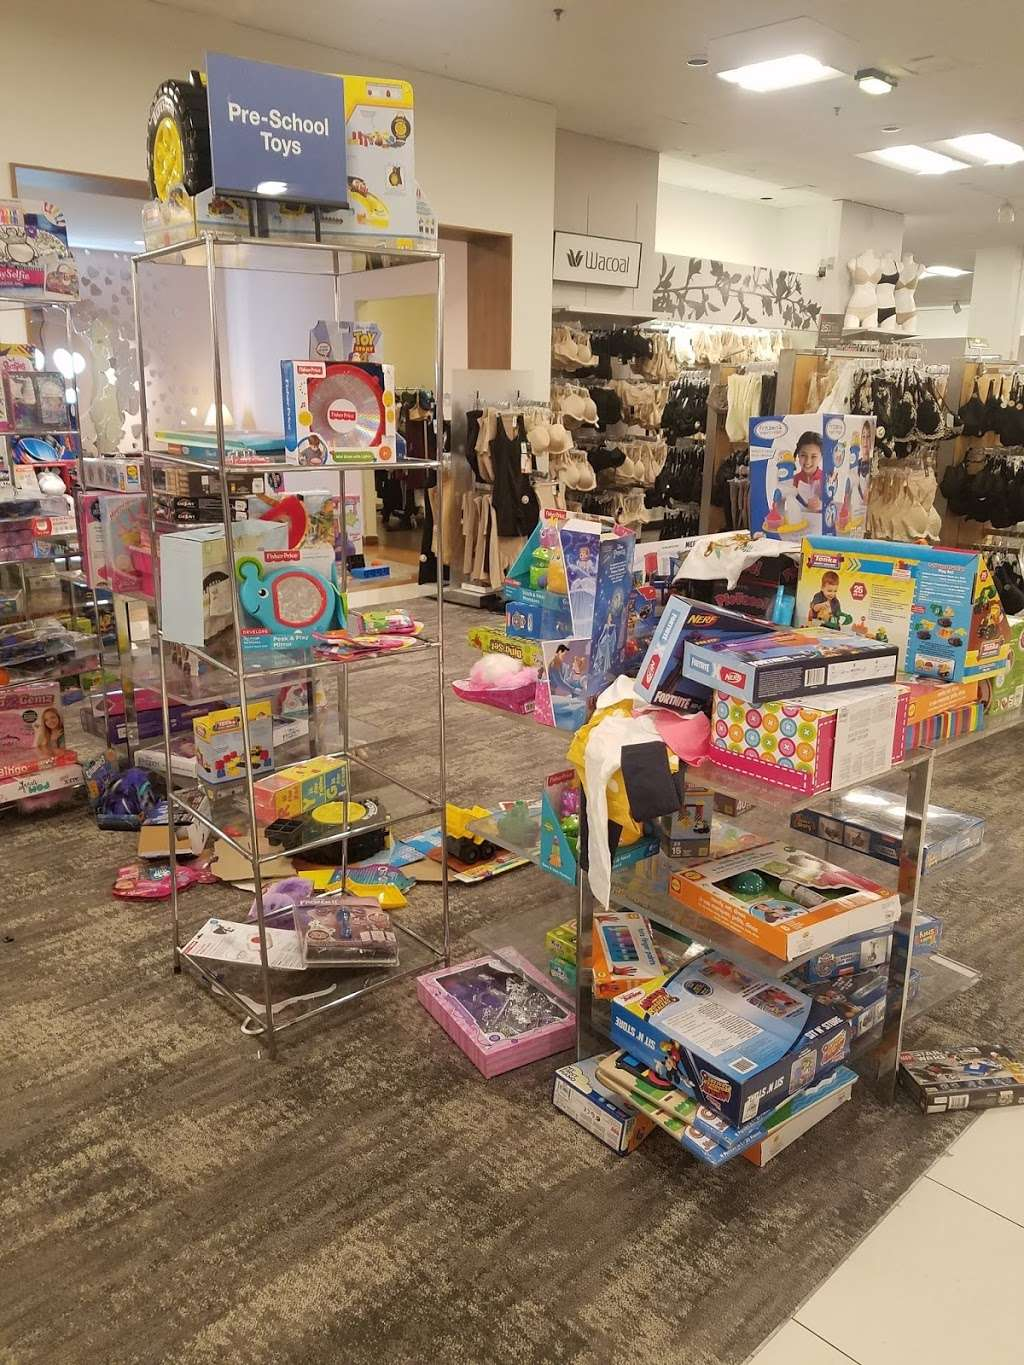 Macys Mens Store - clothing store  | Photo 4 of 9 | Address: 69 Green Acres Rd S, Valley Stream, NY 11581, USA | Phone: (516) 561-6100